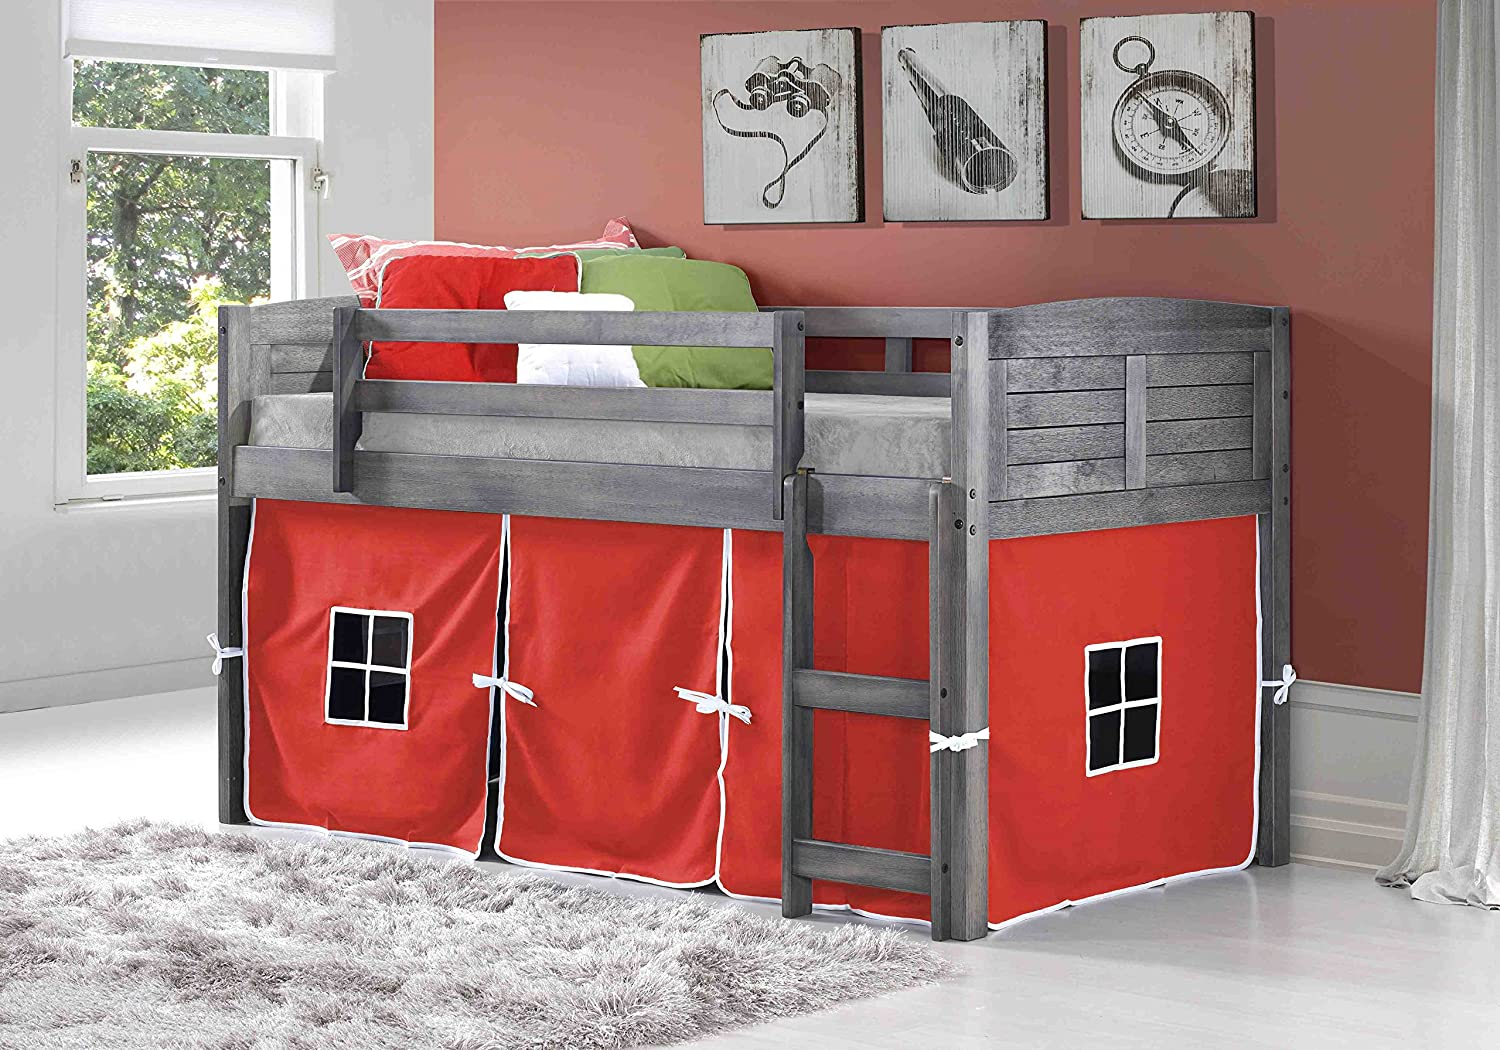 Amazon.com: Donco Kids 795-ATW-750C-TR Louver Low Loft Bed with Red Tent, Twin, White: Kitchen & Dining